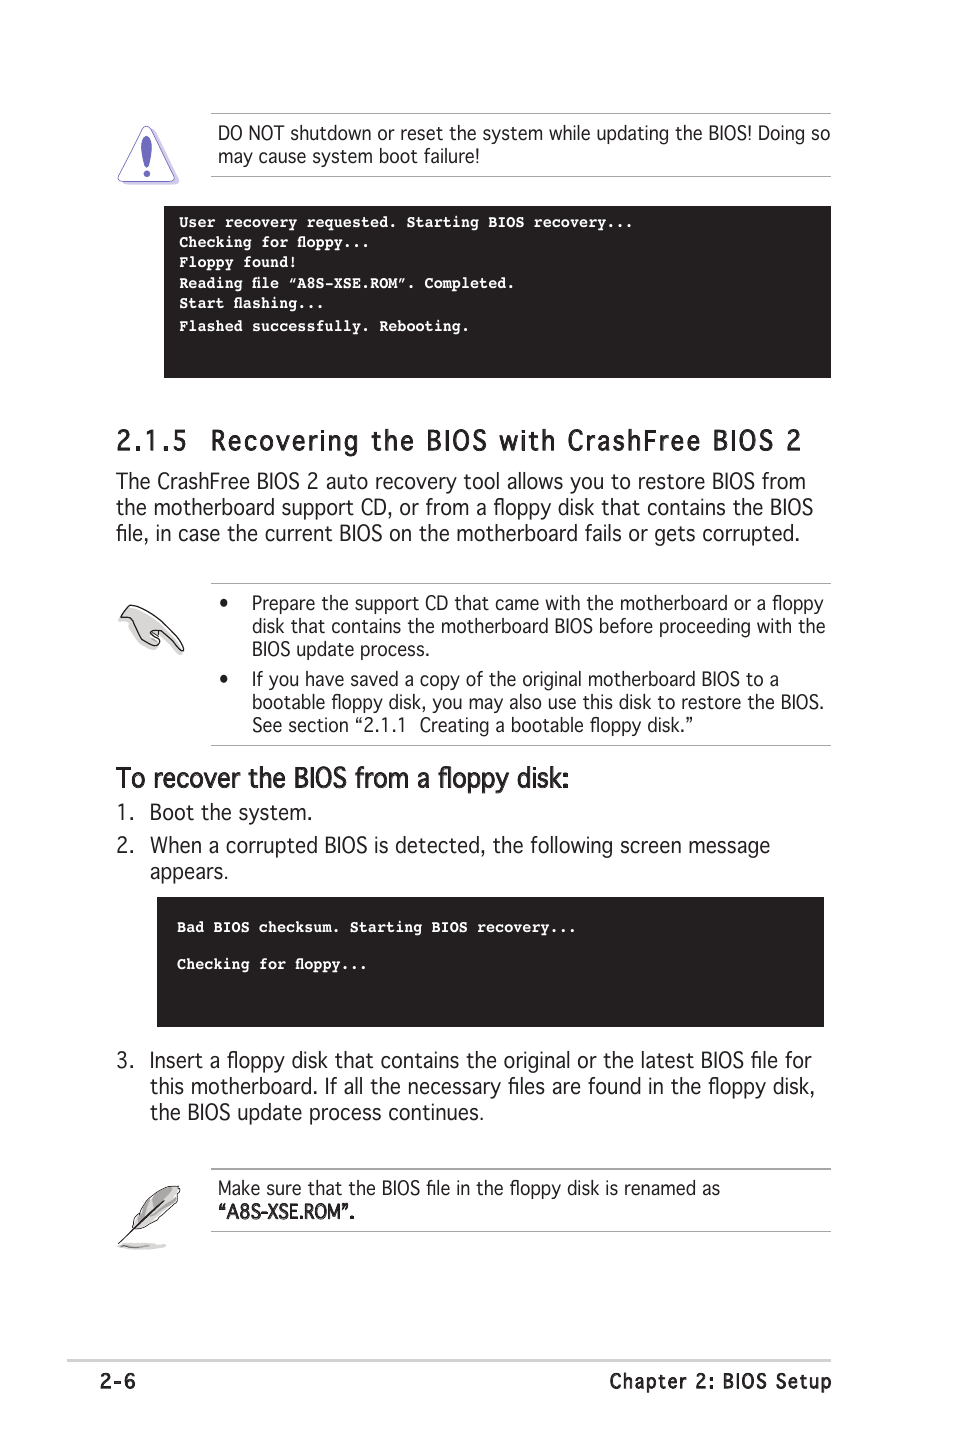 5 recovering the bios with crashfree bios 2 | Asus A8S-X